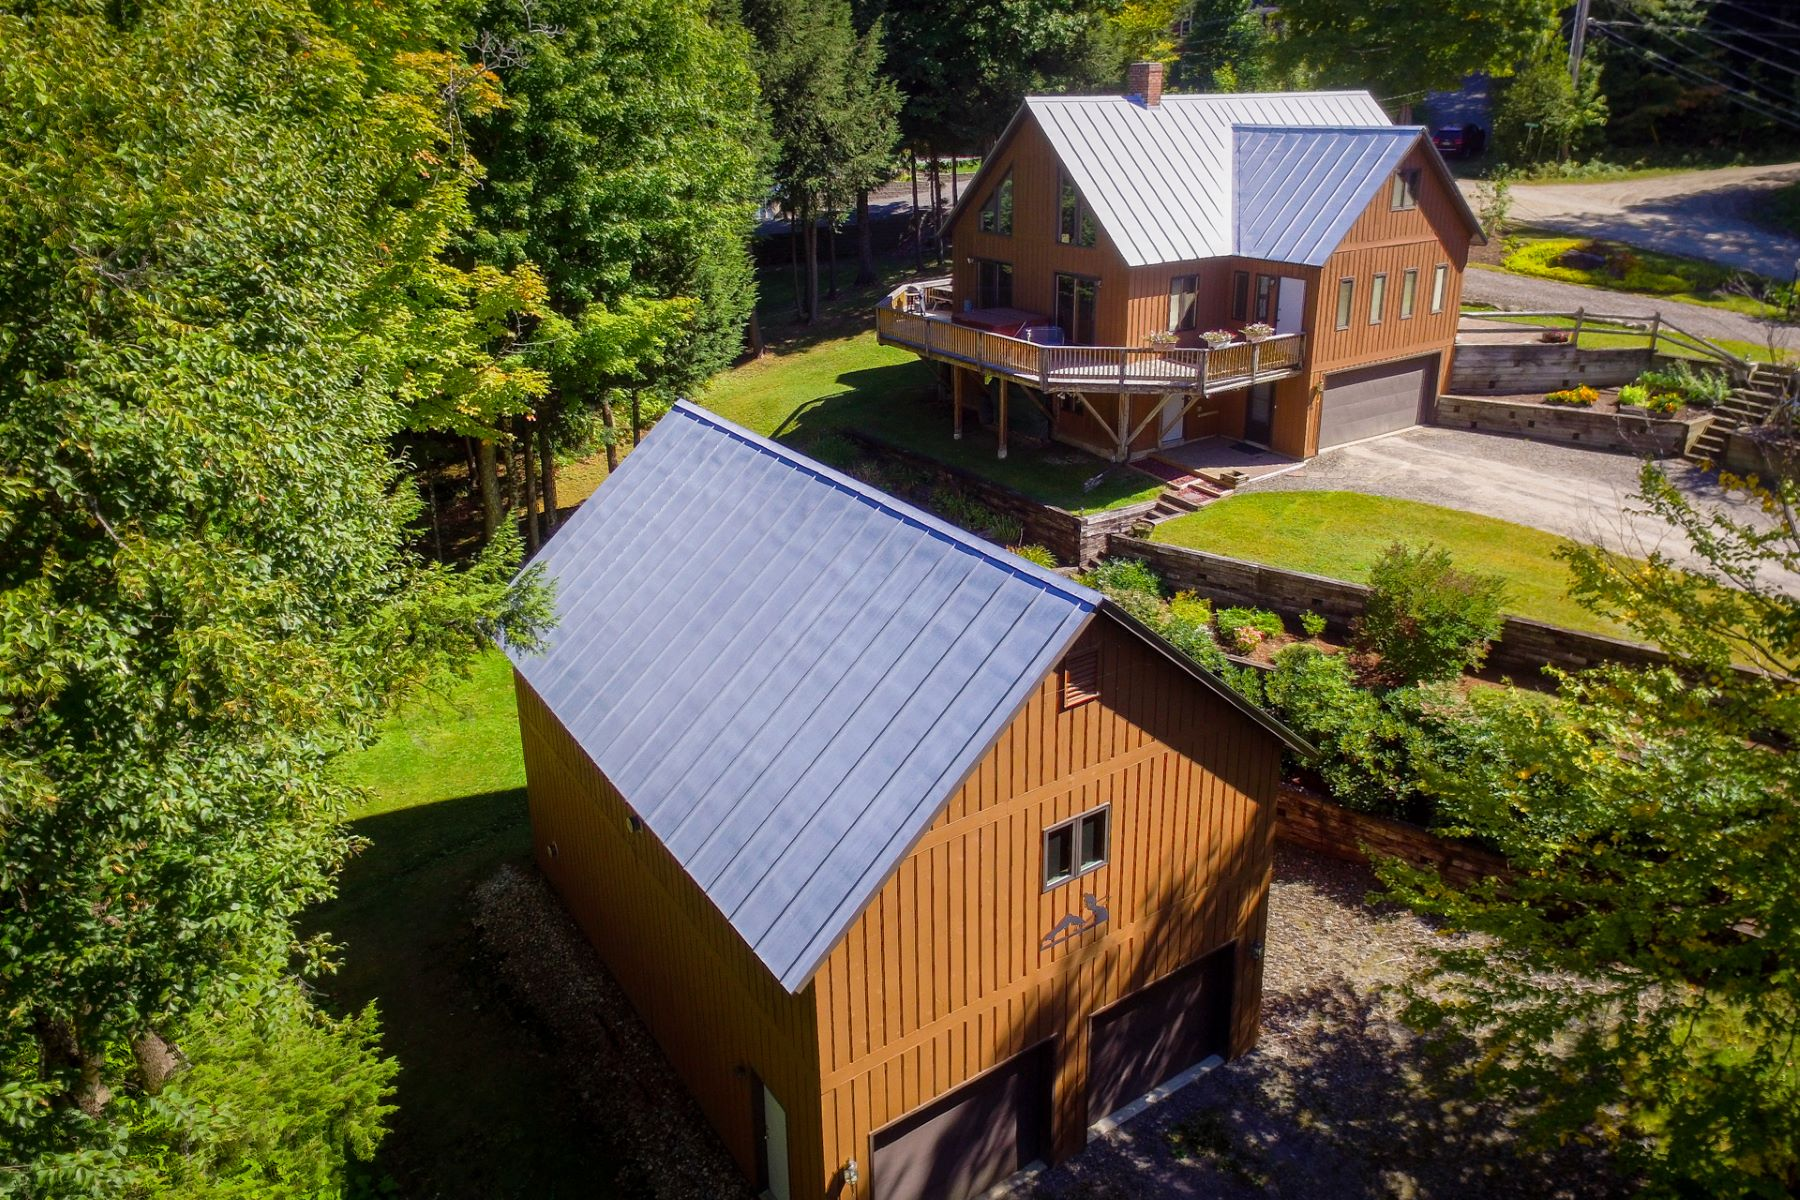 Single Family Home for Sale at 543 High Meadows Road, Burke 543 High Meadows Rd Burke, Vermont 05832 United States